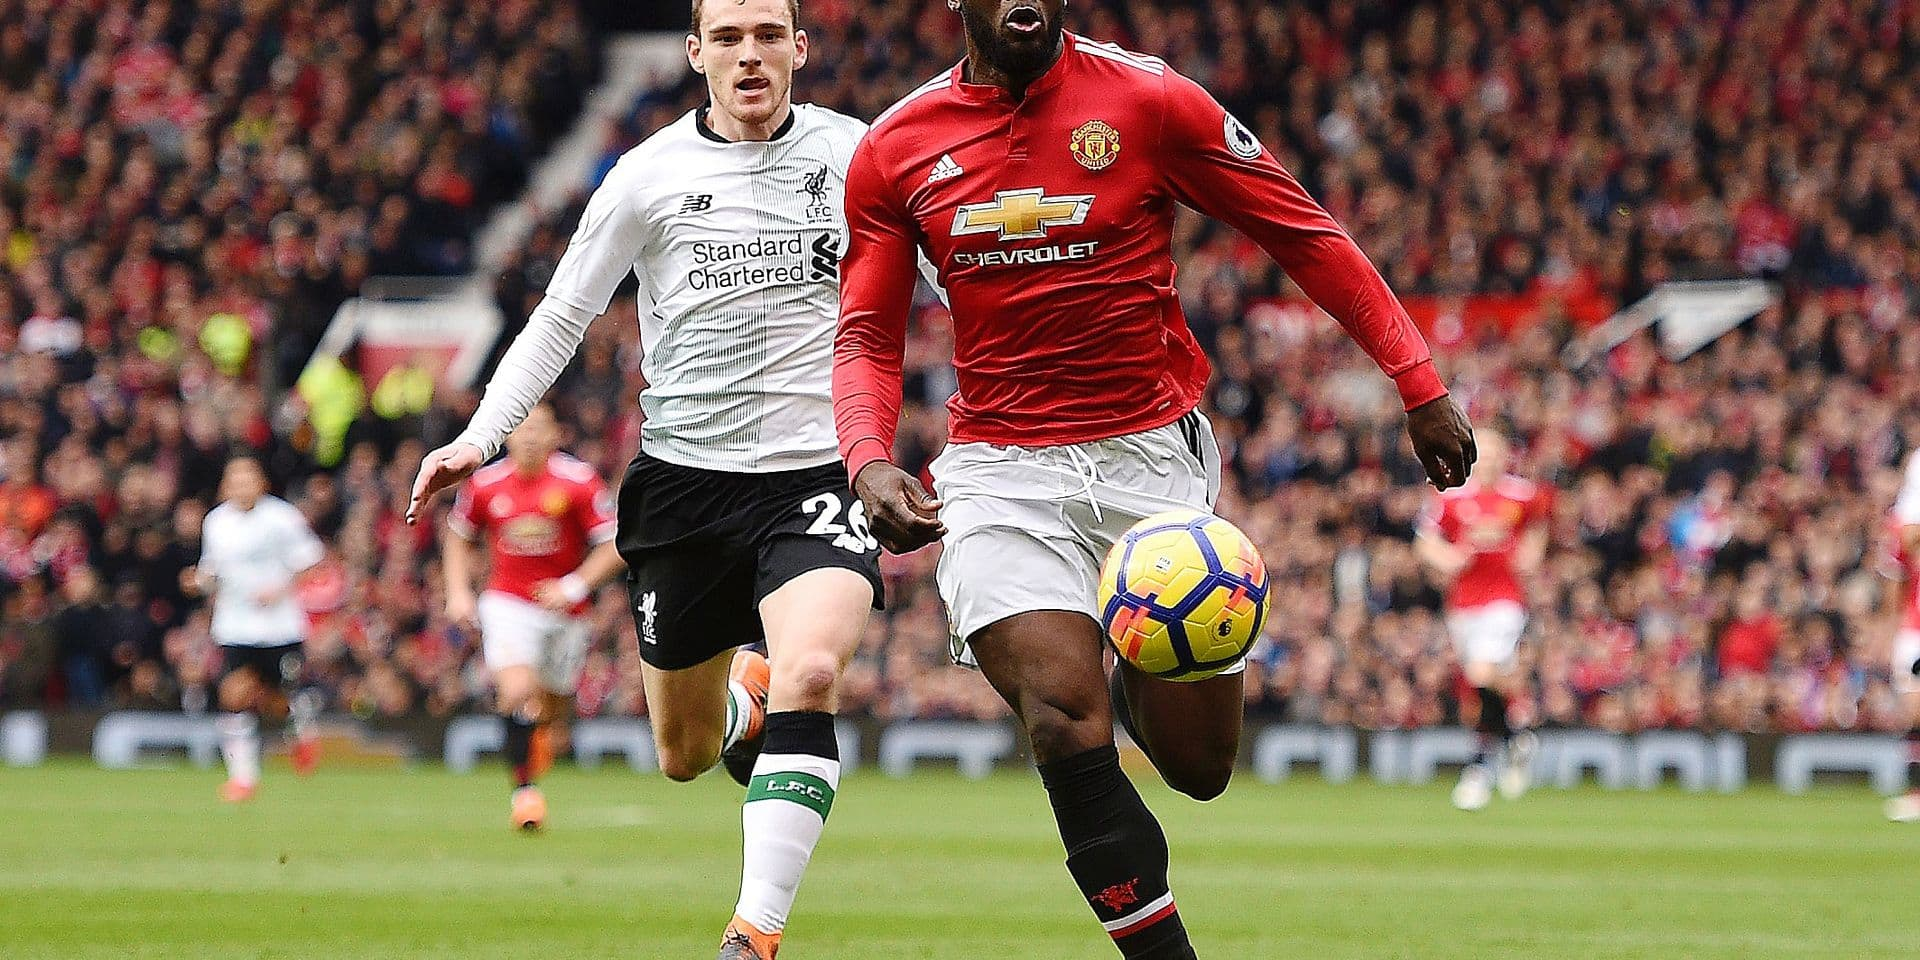 Manchester United's Belgian striker Romelu Lukaku (R) chases down the ball pursued by Liverpool's Scottish defender Andrew Robertson (L) during the English Premier League football match between Manchester United and Liverpool at Old Trafford in Manchester, north west England, on March 10, 2018. / AFP PHOTO / Oli SCARFF / RESTRICTED TO EDITORIAL USE. No use with unauthorized audio, video, data, fixture lists, club/league logos or 'live' services. Online in-match use limited to 75 images, no video emulation. No use in betting, games or single club/league/player publications. /